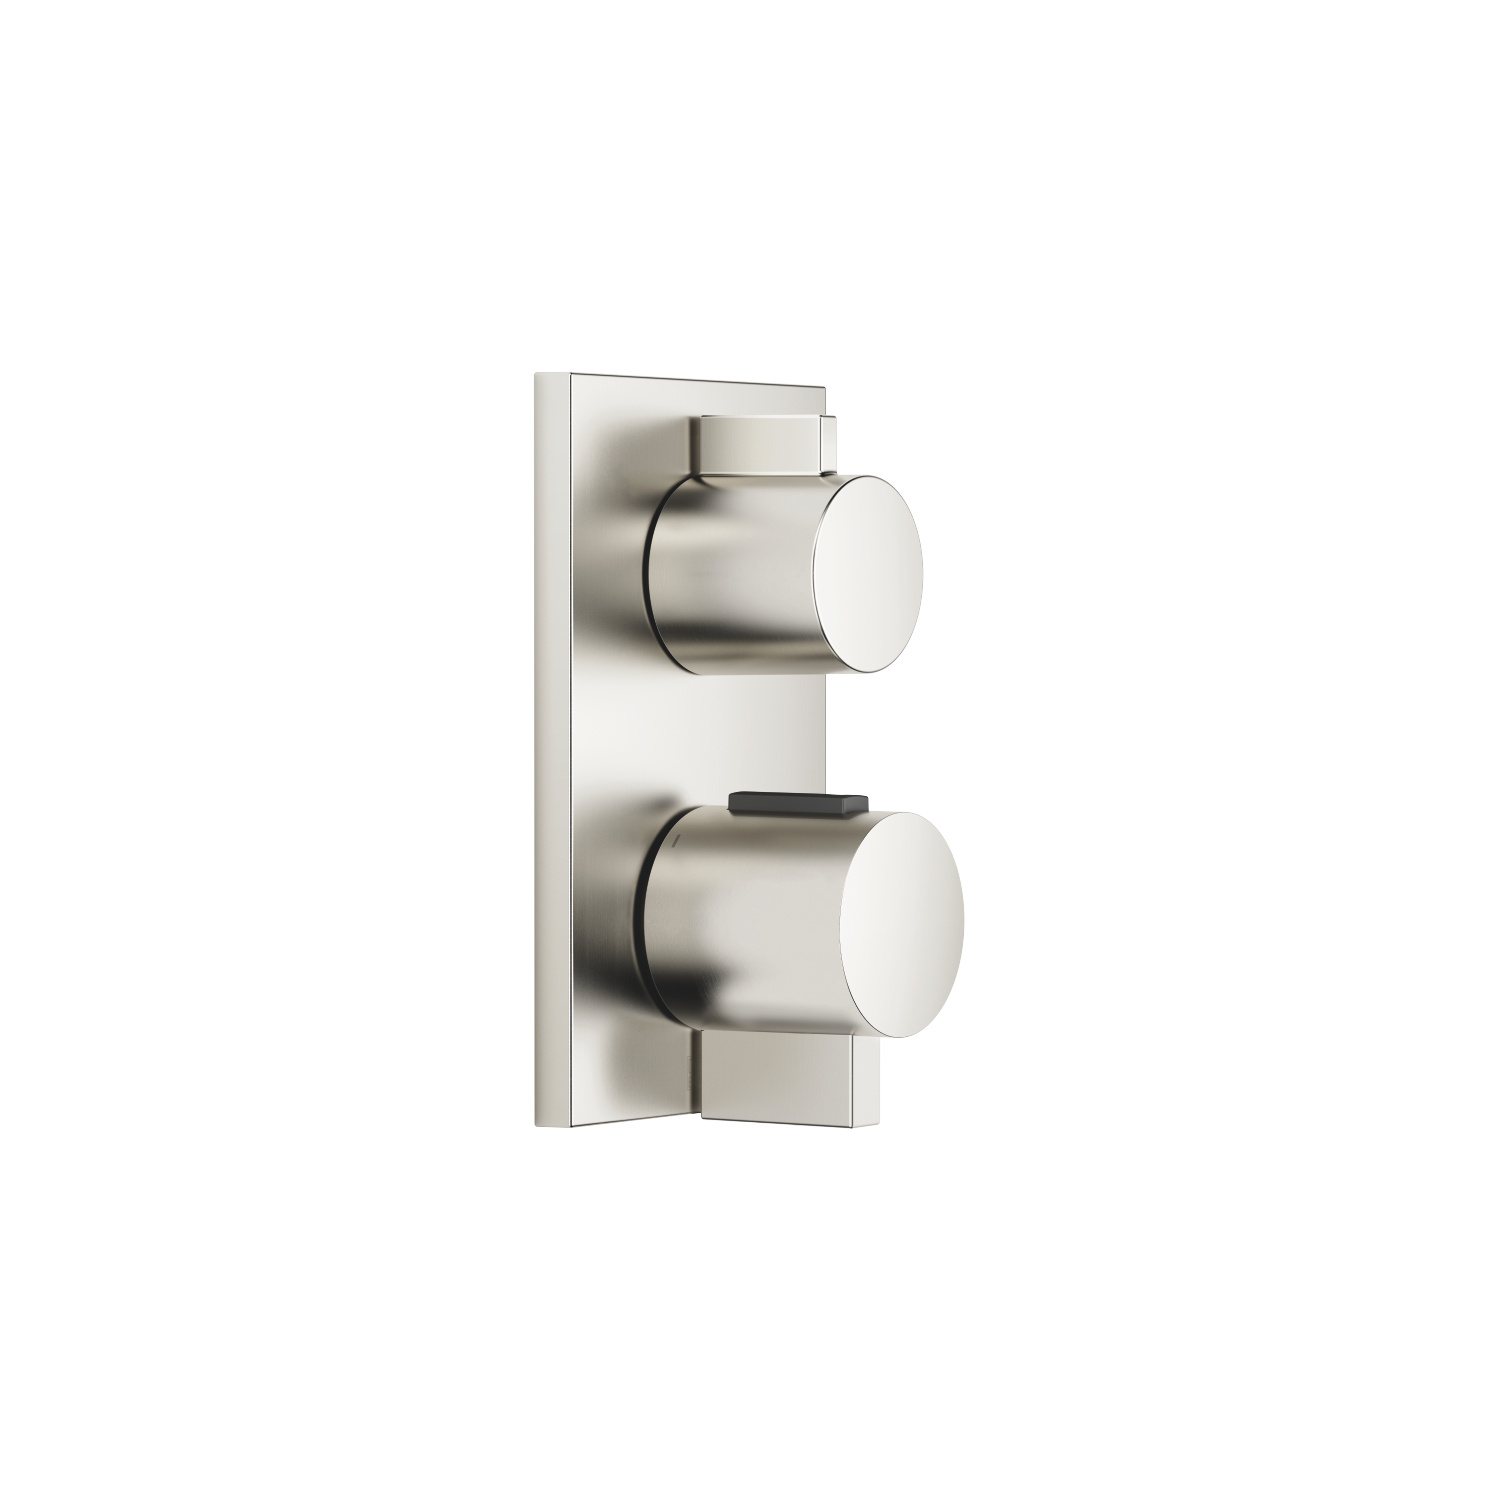 Concealed thermostat with one-way volume control - platinum matte